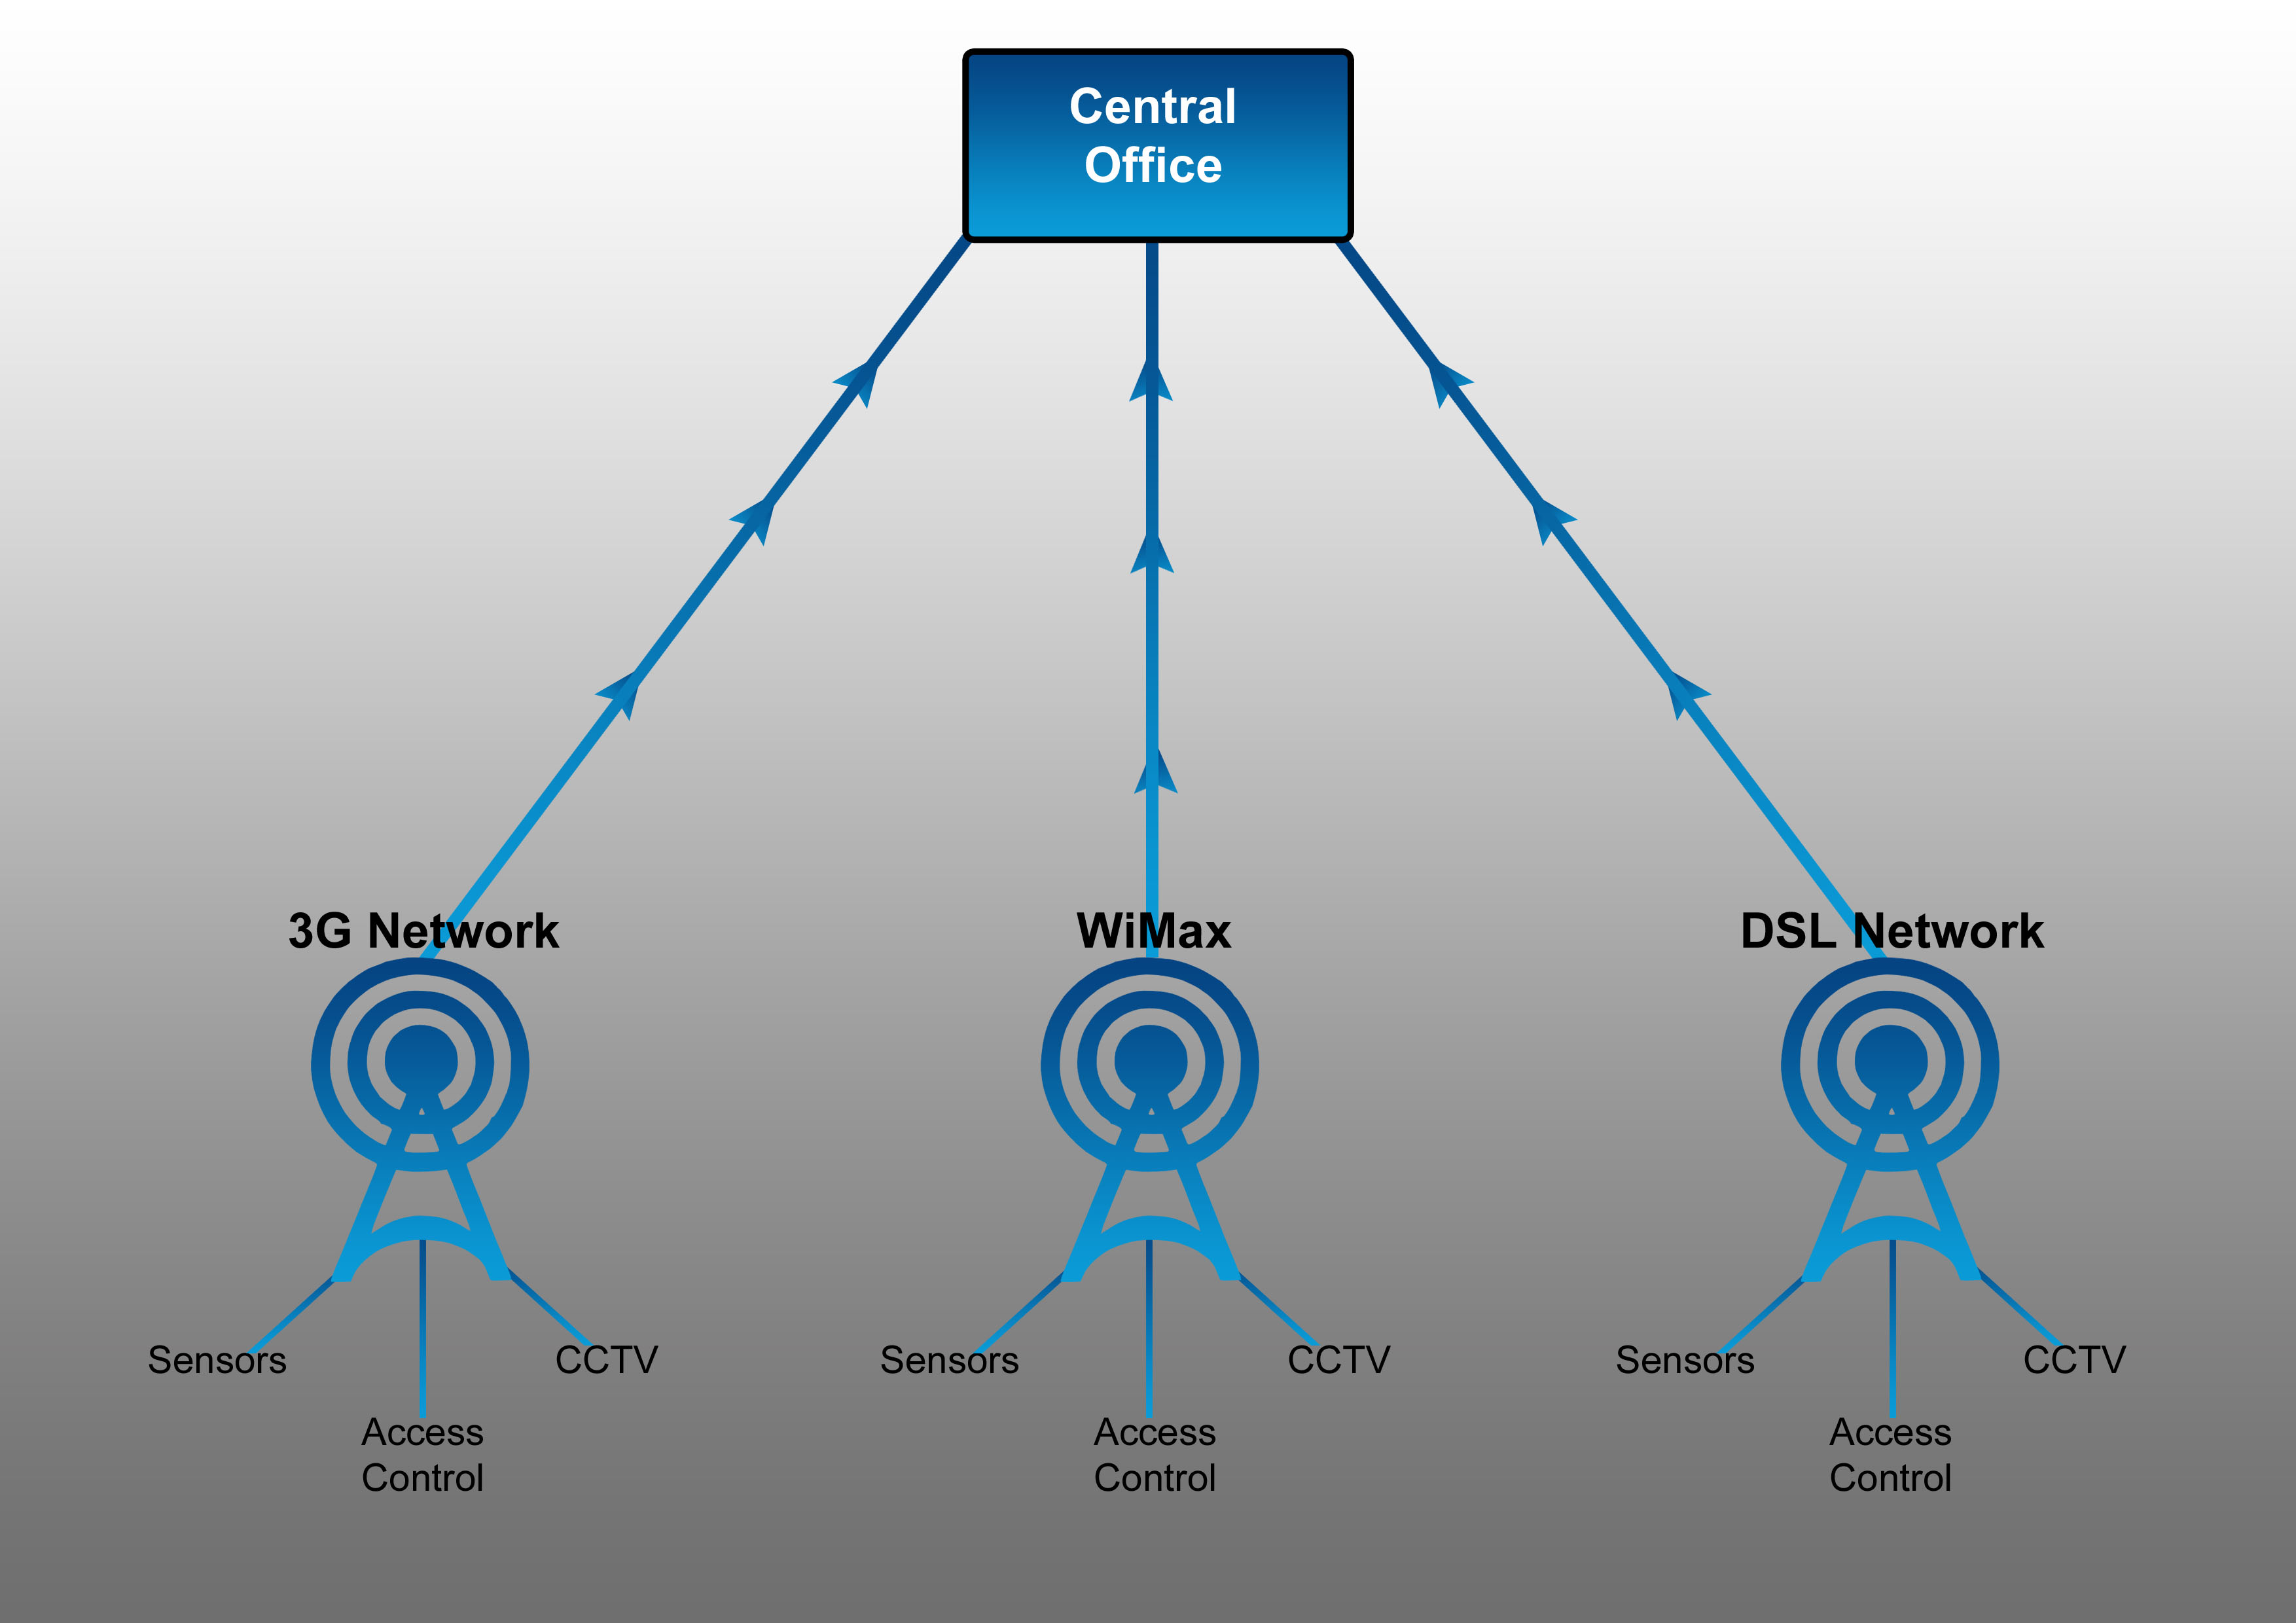 cellular phone tower signal diagram which markets are represented in the simple circular flow cell security viacam